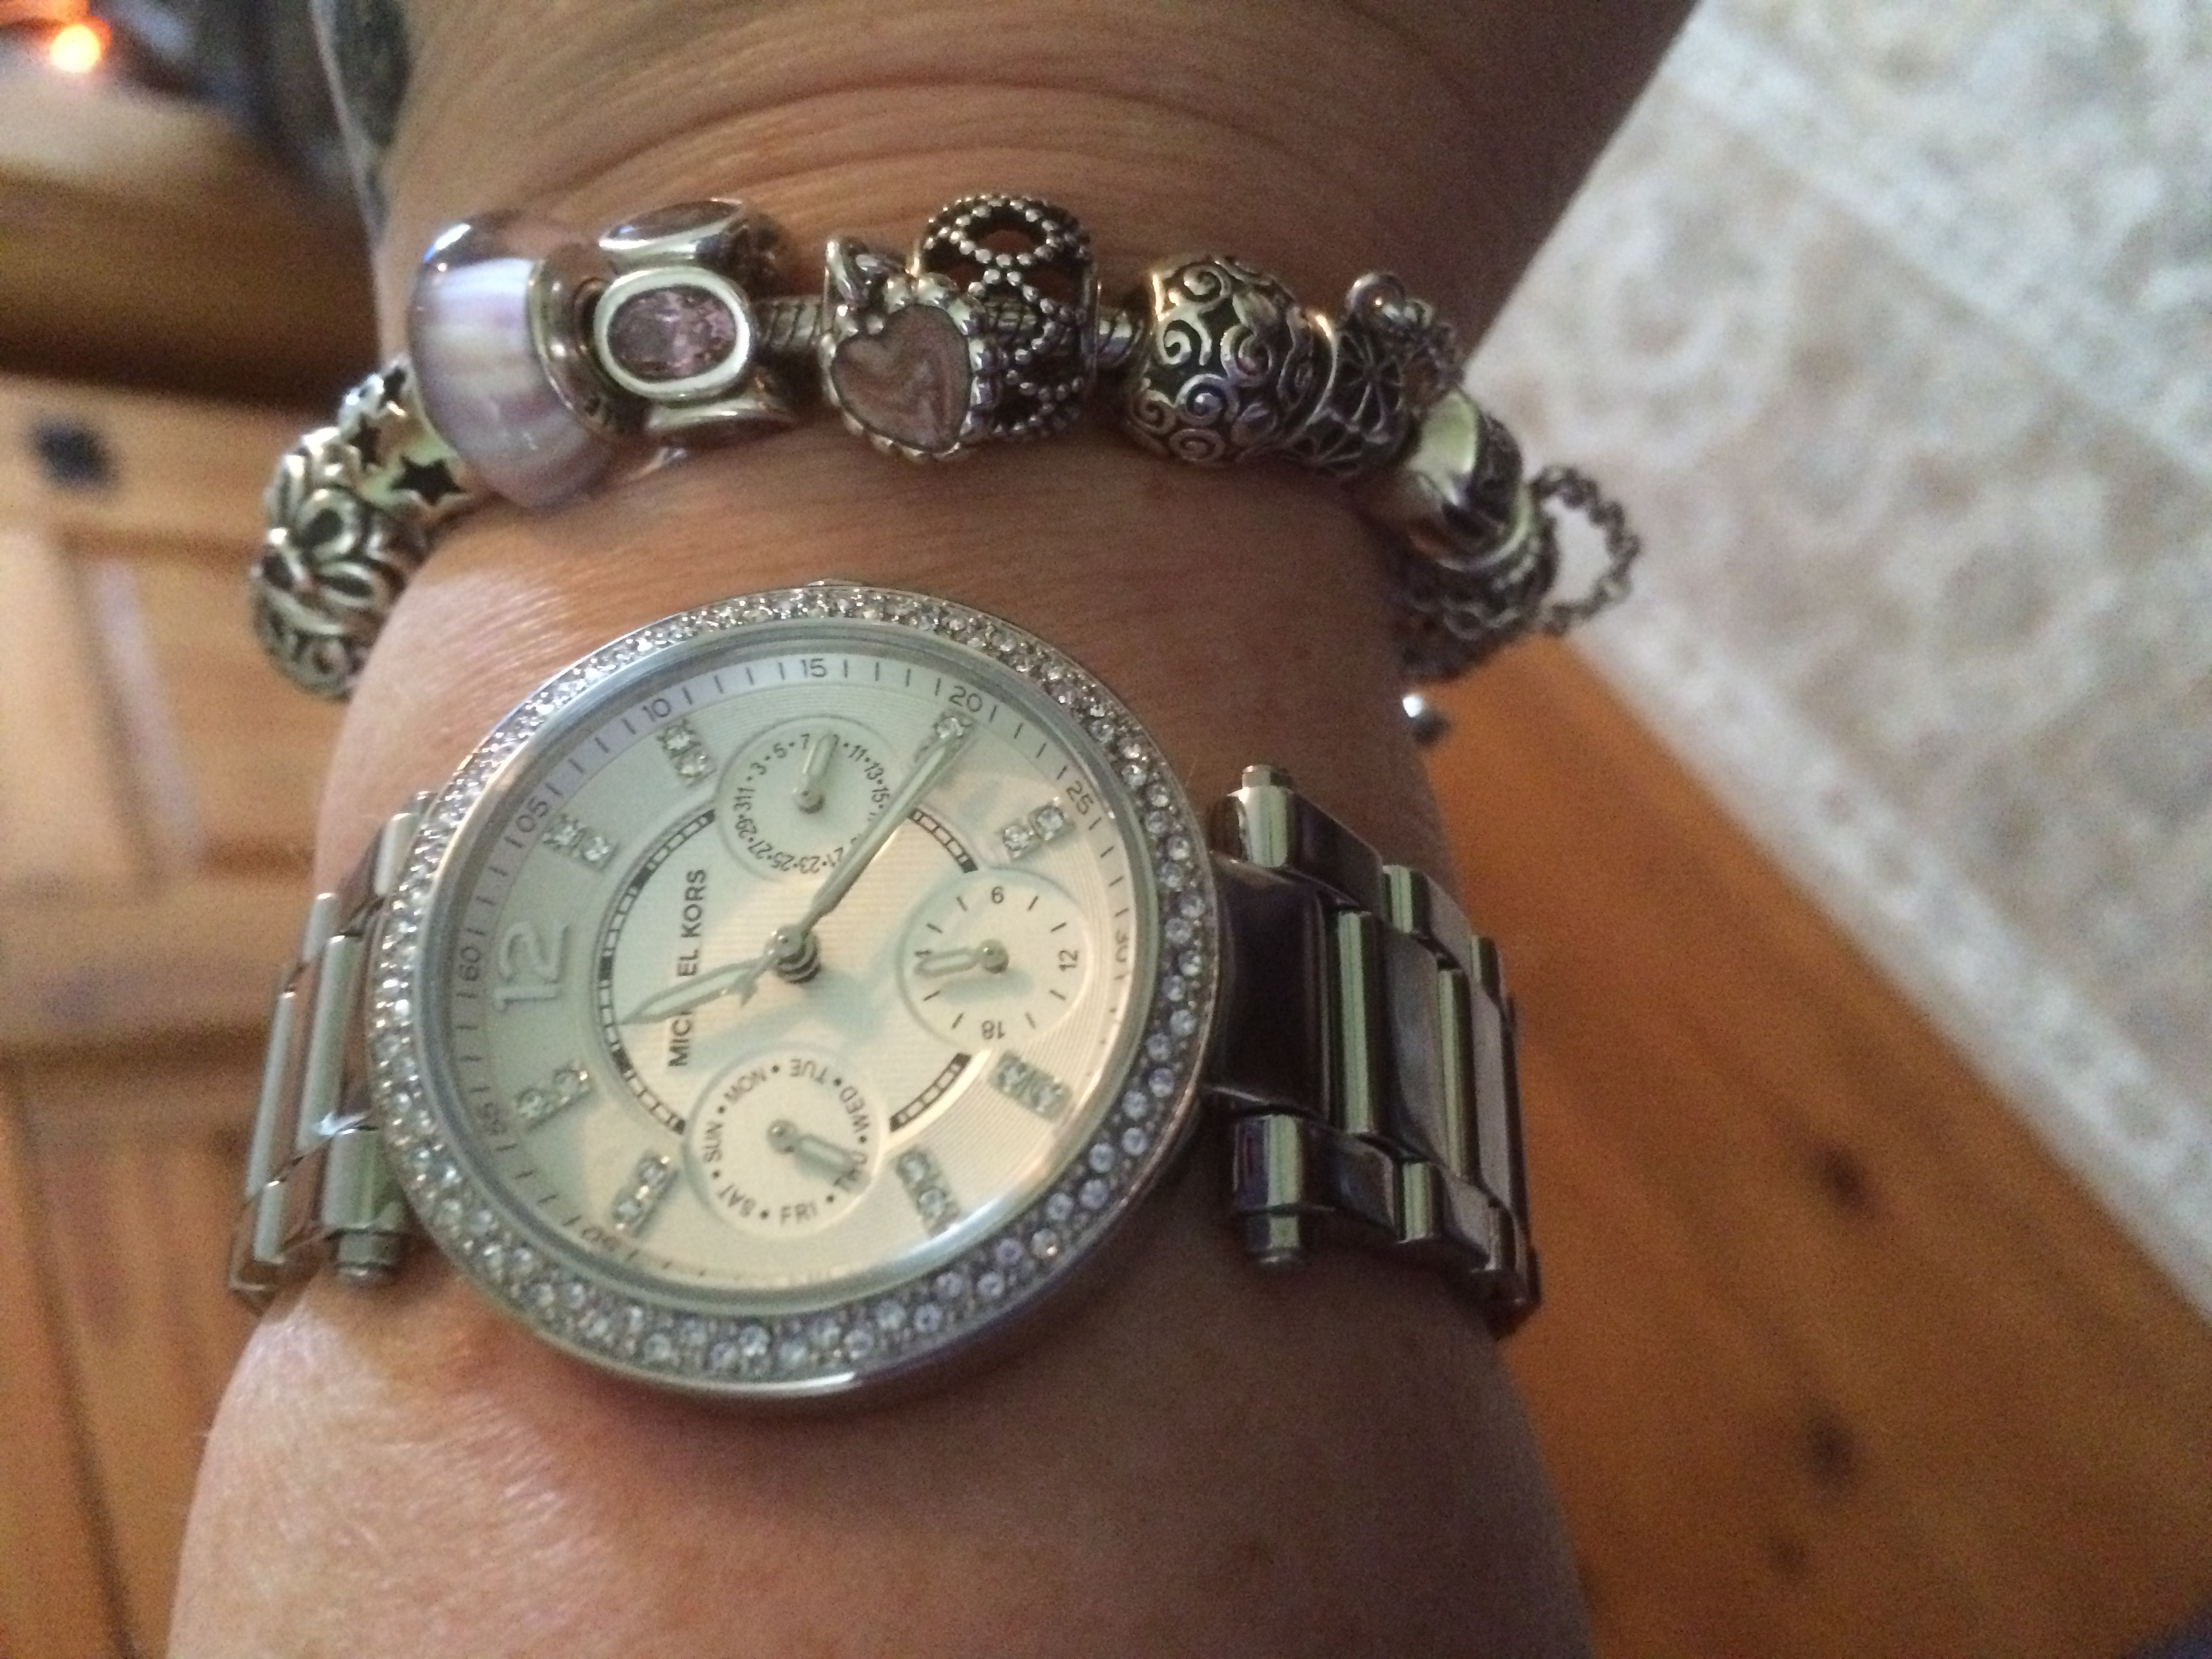 41d54ad6e7e2 Lovely watch my wife was very pleased with it. Excellent service fast  delivery.